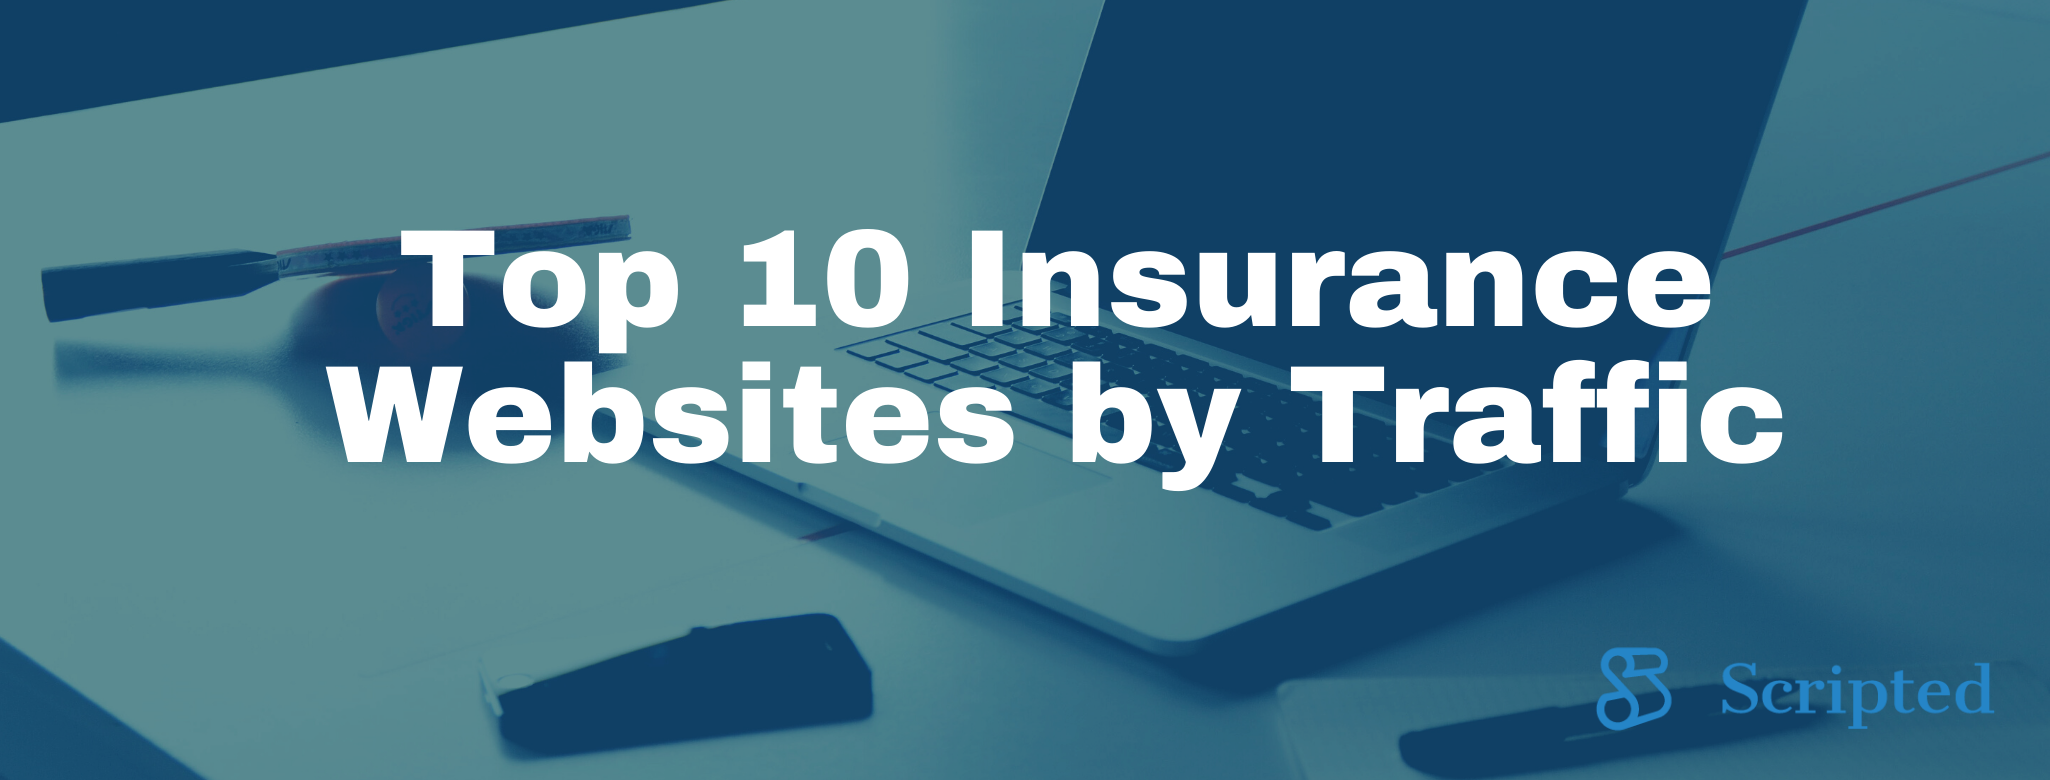 Top 10 Insurance Industry Websites by Organic Traffic